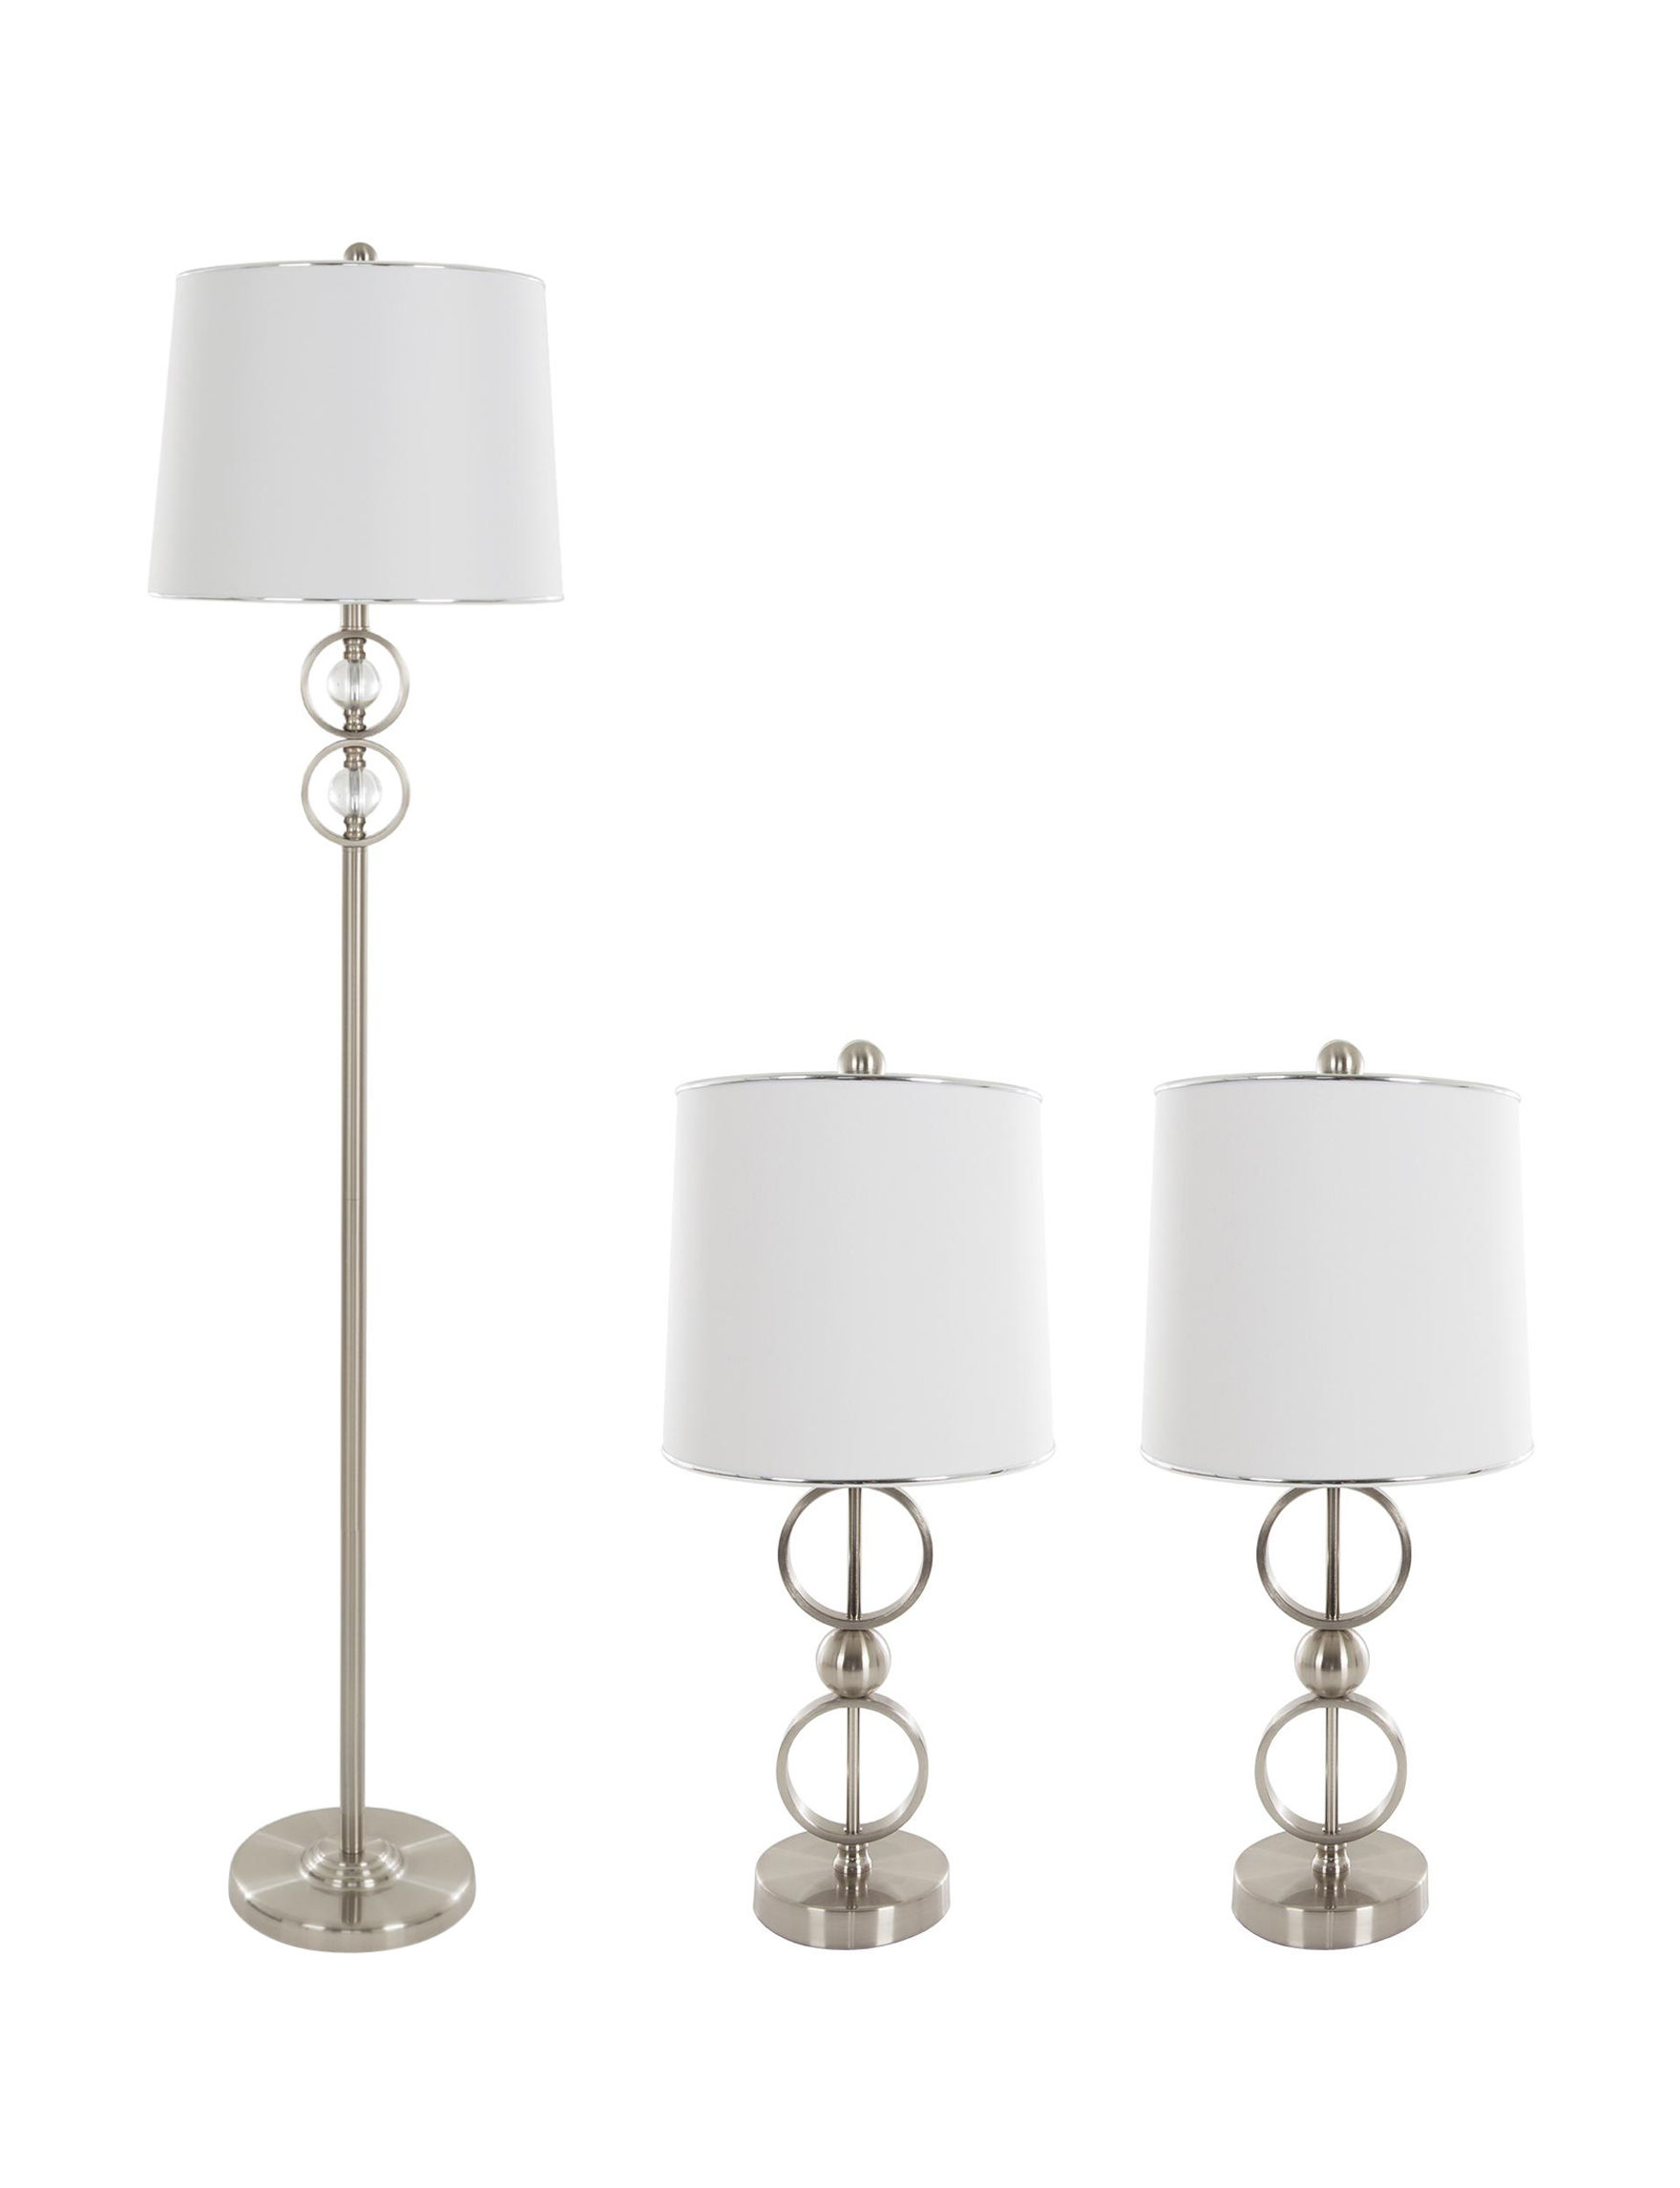 Lavish Home Silver Floor Lamps Table Lamps Lighting & Lamps